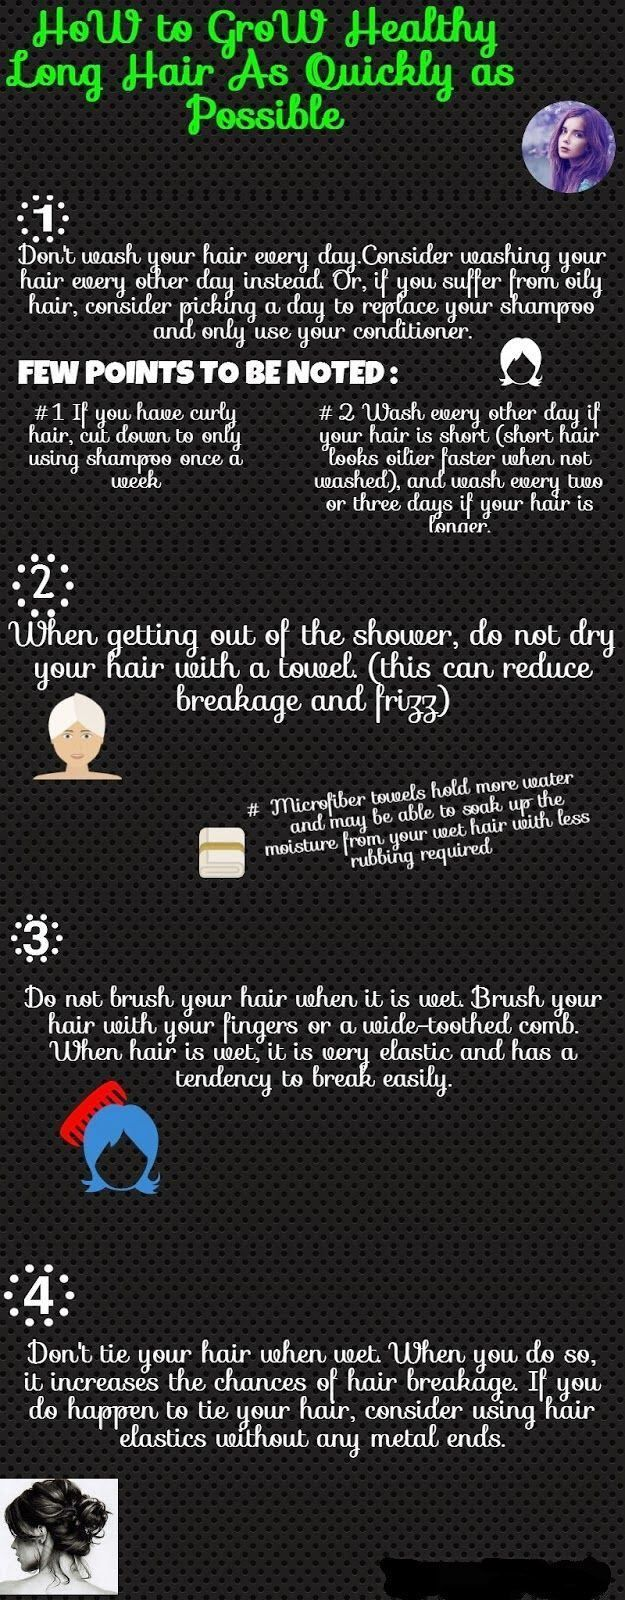 Consider the following tips on how to grow hair faster in order to make the most of your lovely locks and achieve the length you've always wanted.